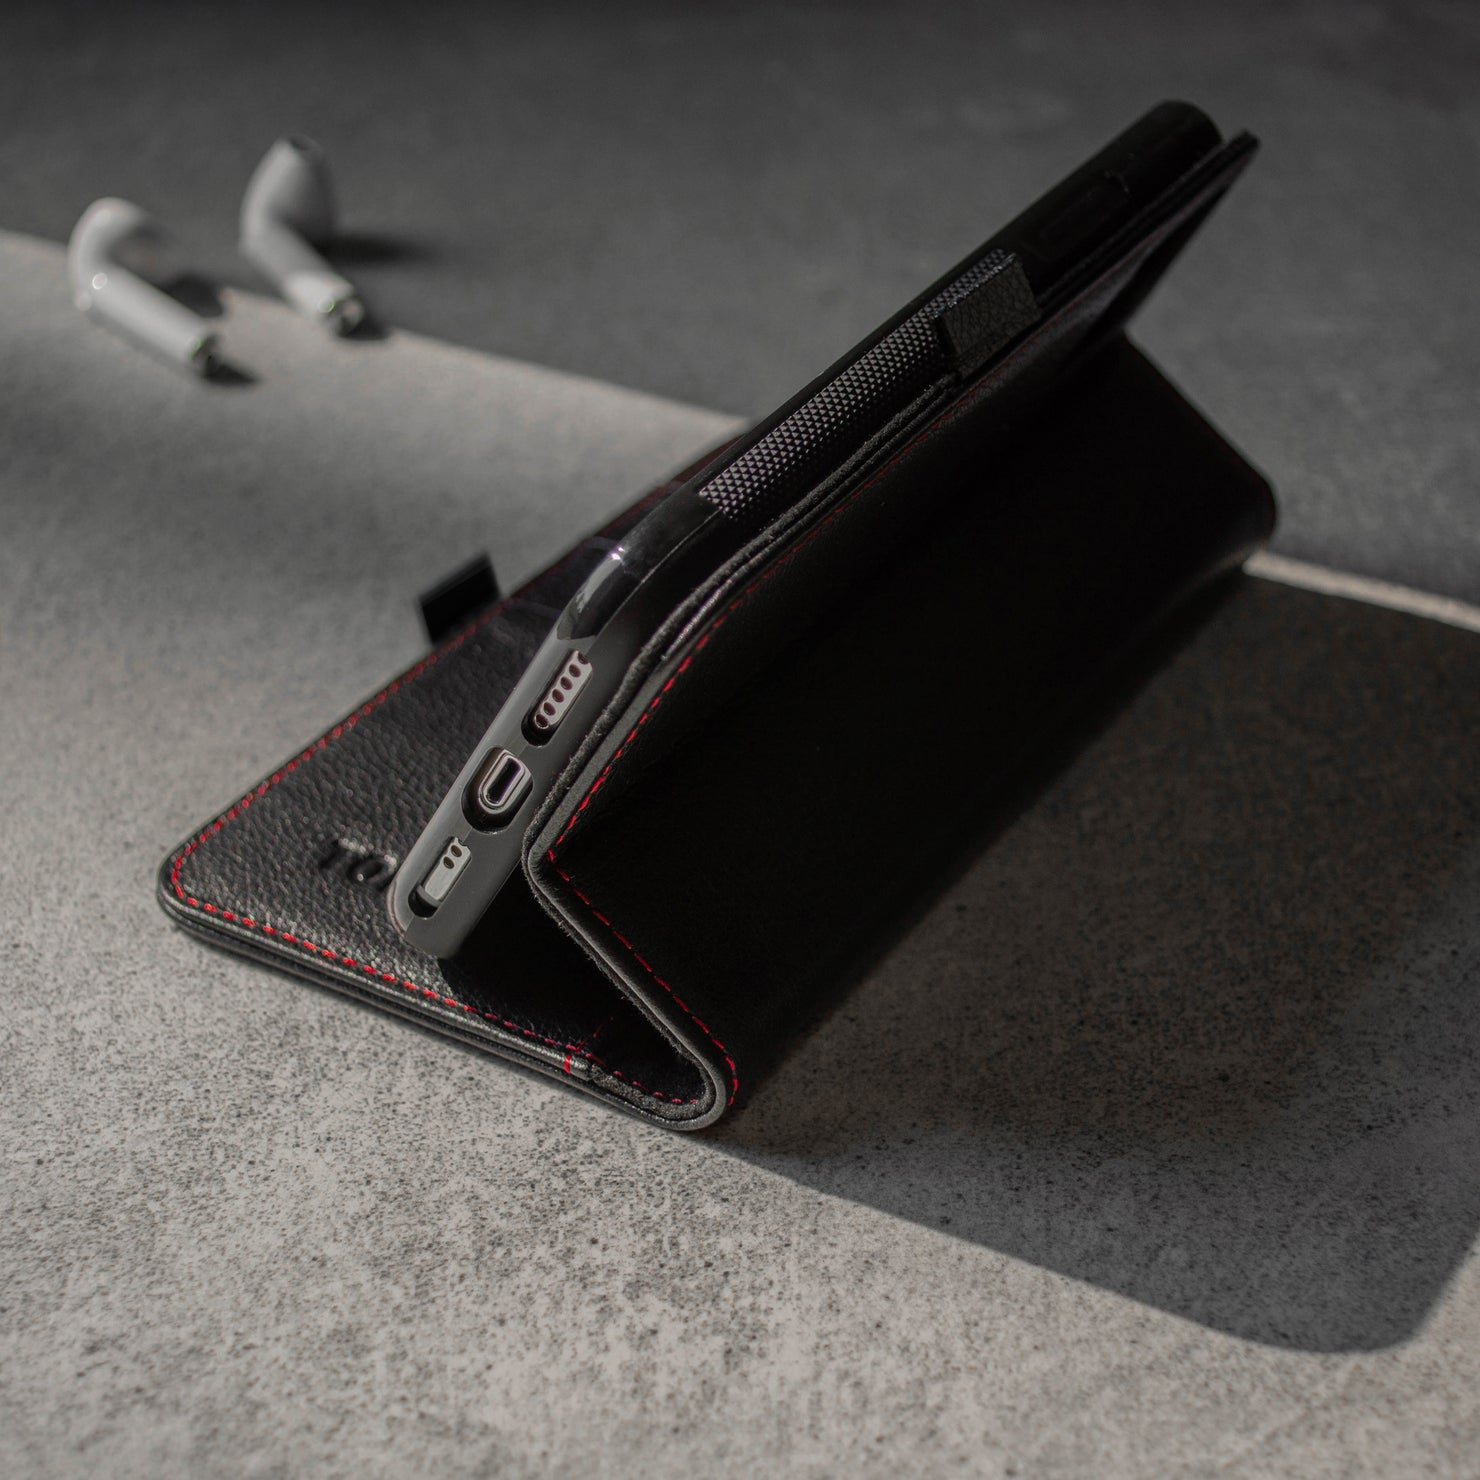 iPhone 11 Pro Max Leather Case - black with red detail 4